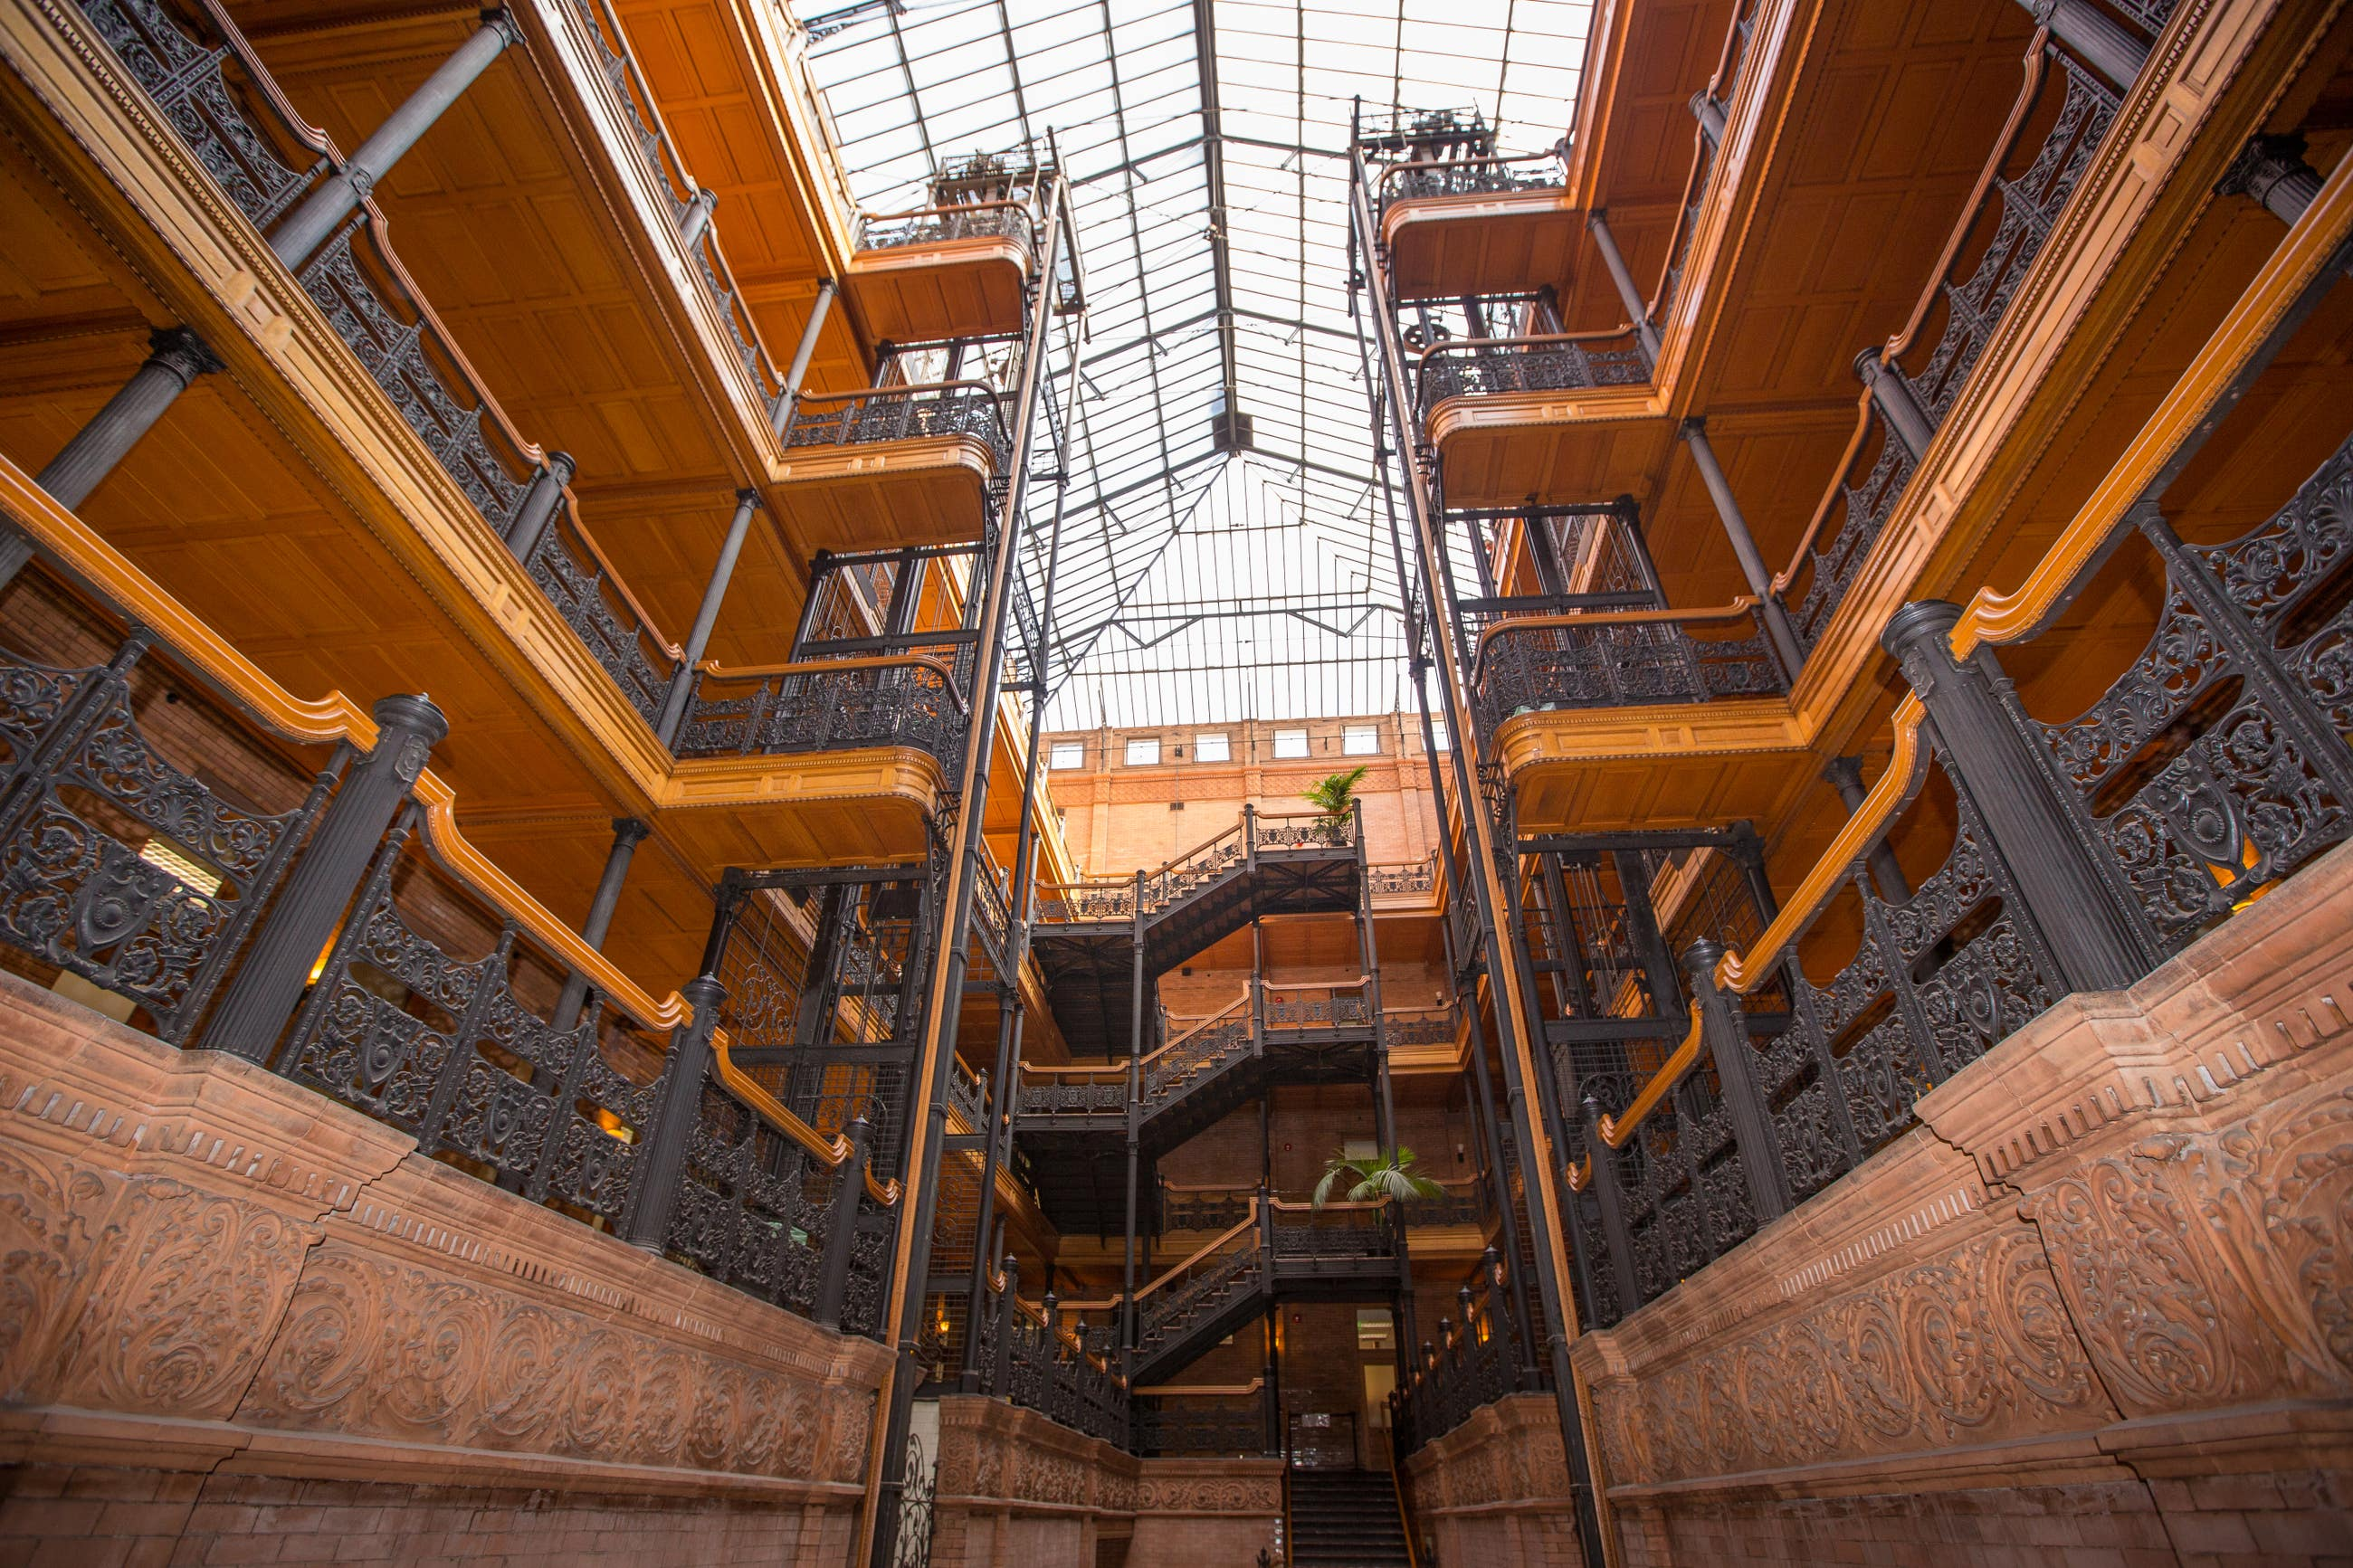 The Bradbury Building in Downtown LA